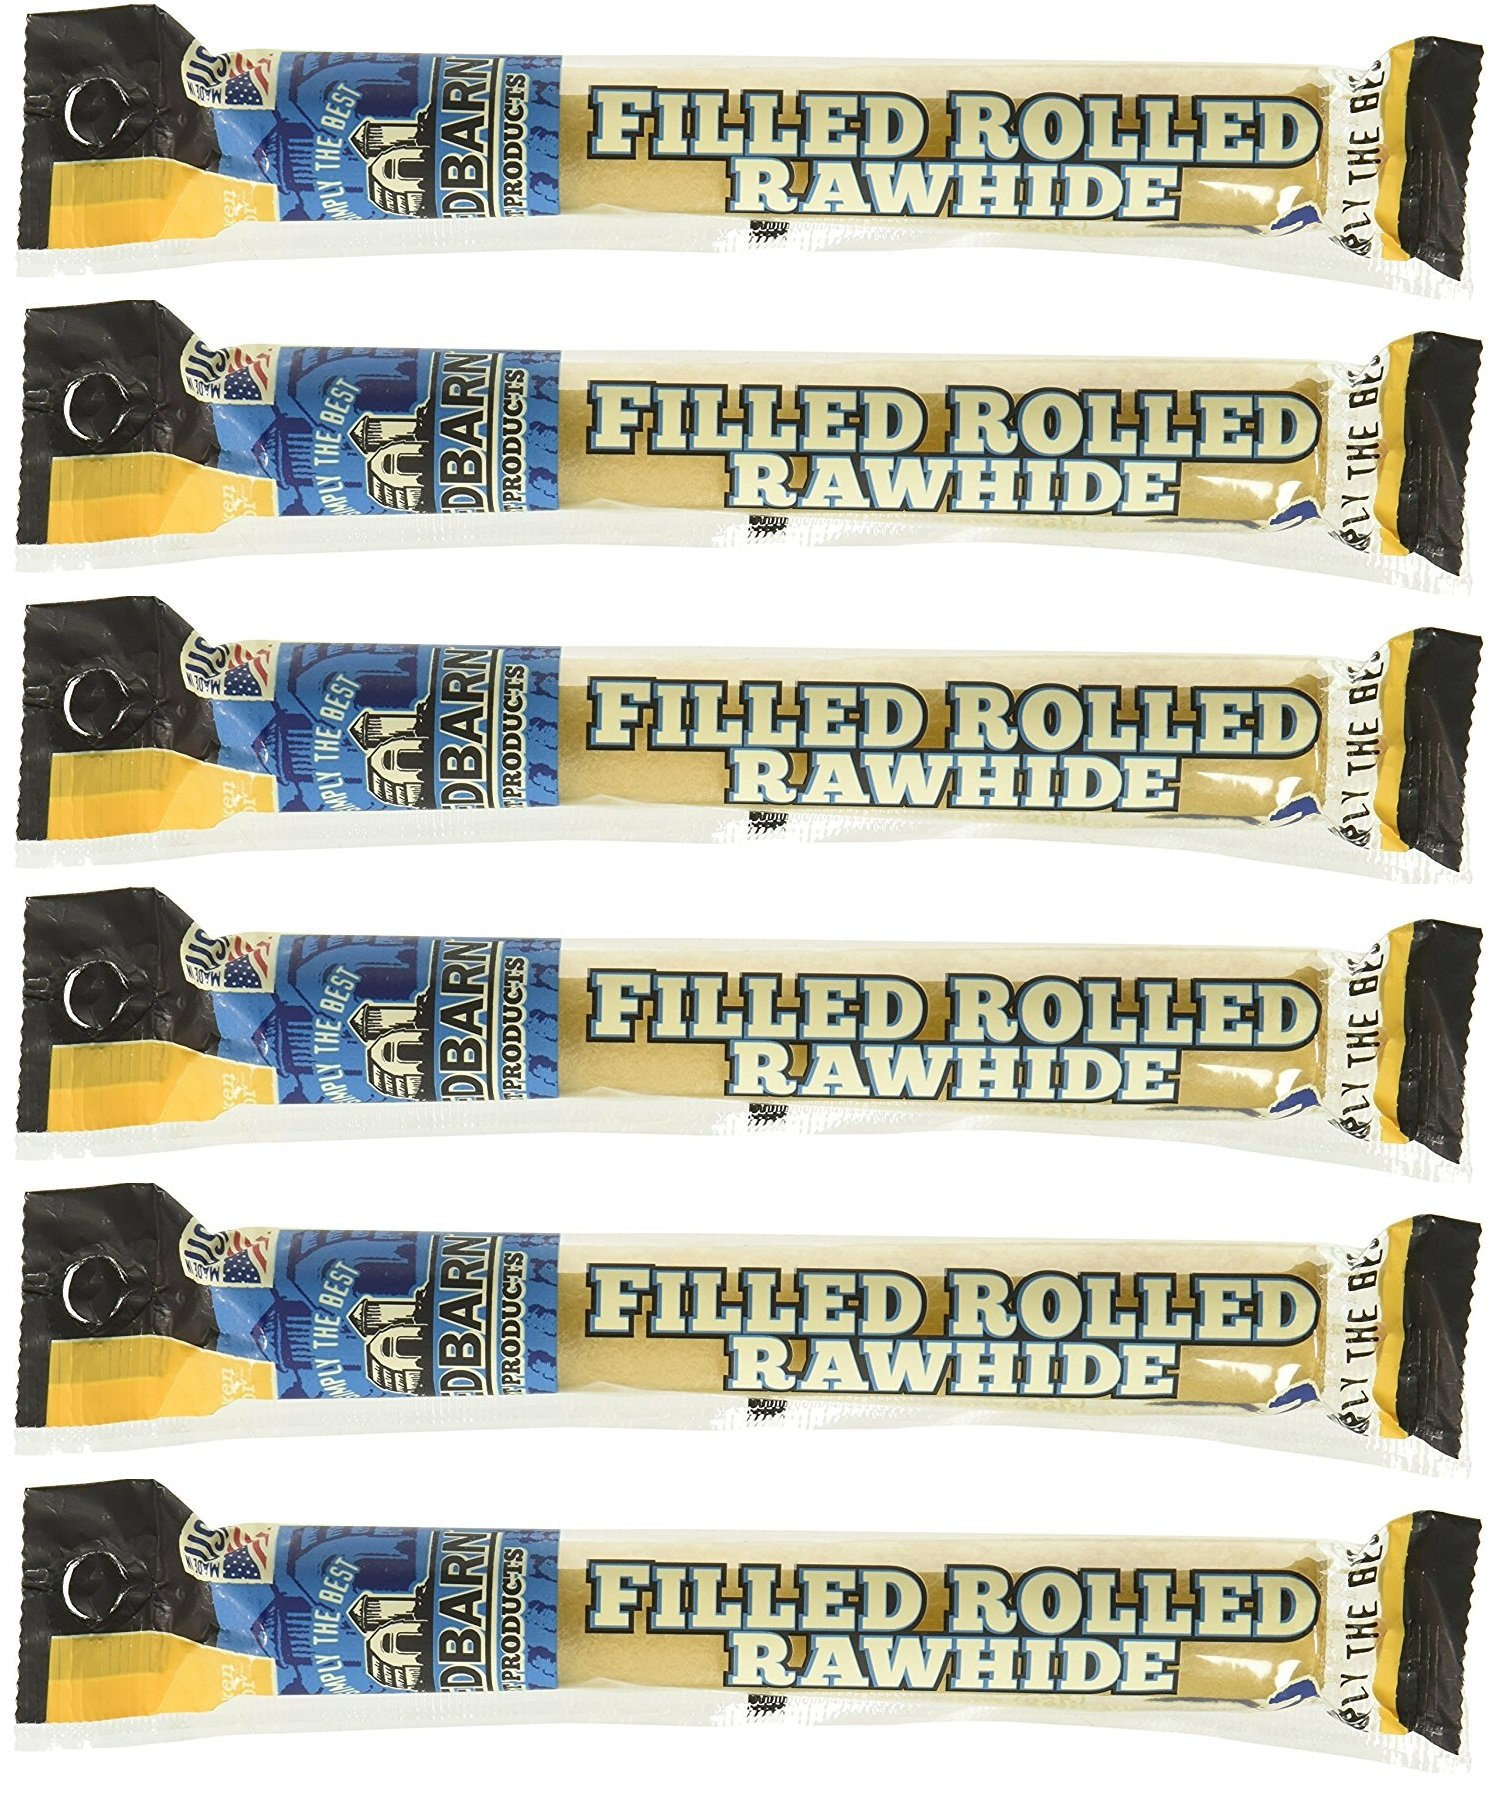 (6 Pack) Redbarn Filled Rolled Rawhide Chicken, 6 Inches each